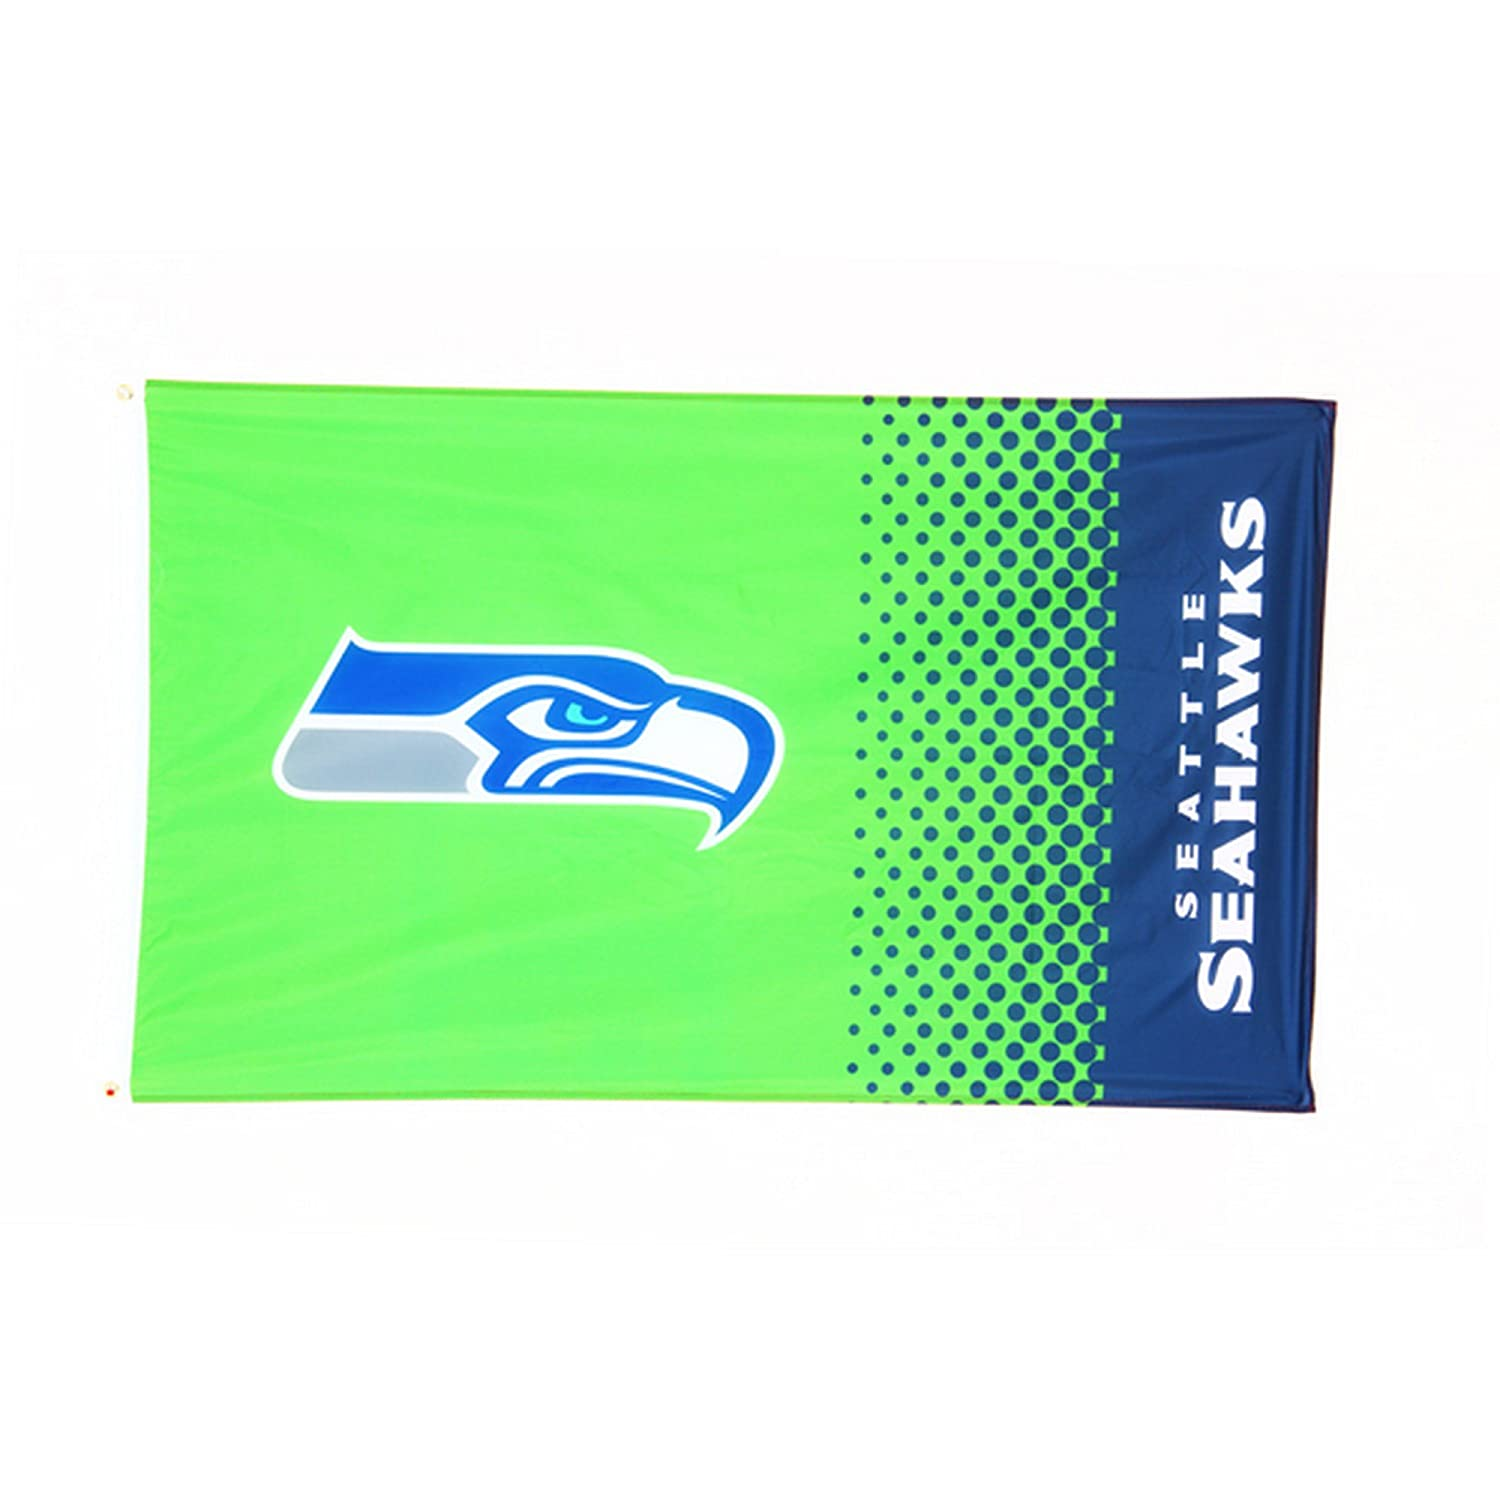 Offizielle NFL Seattle Seahawks Fahne in 150 cm x 90 cm FOREVER COLLECTIBLES